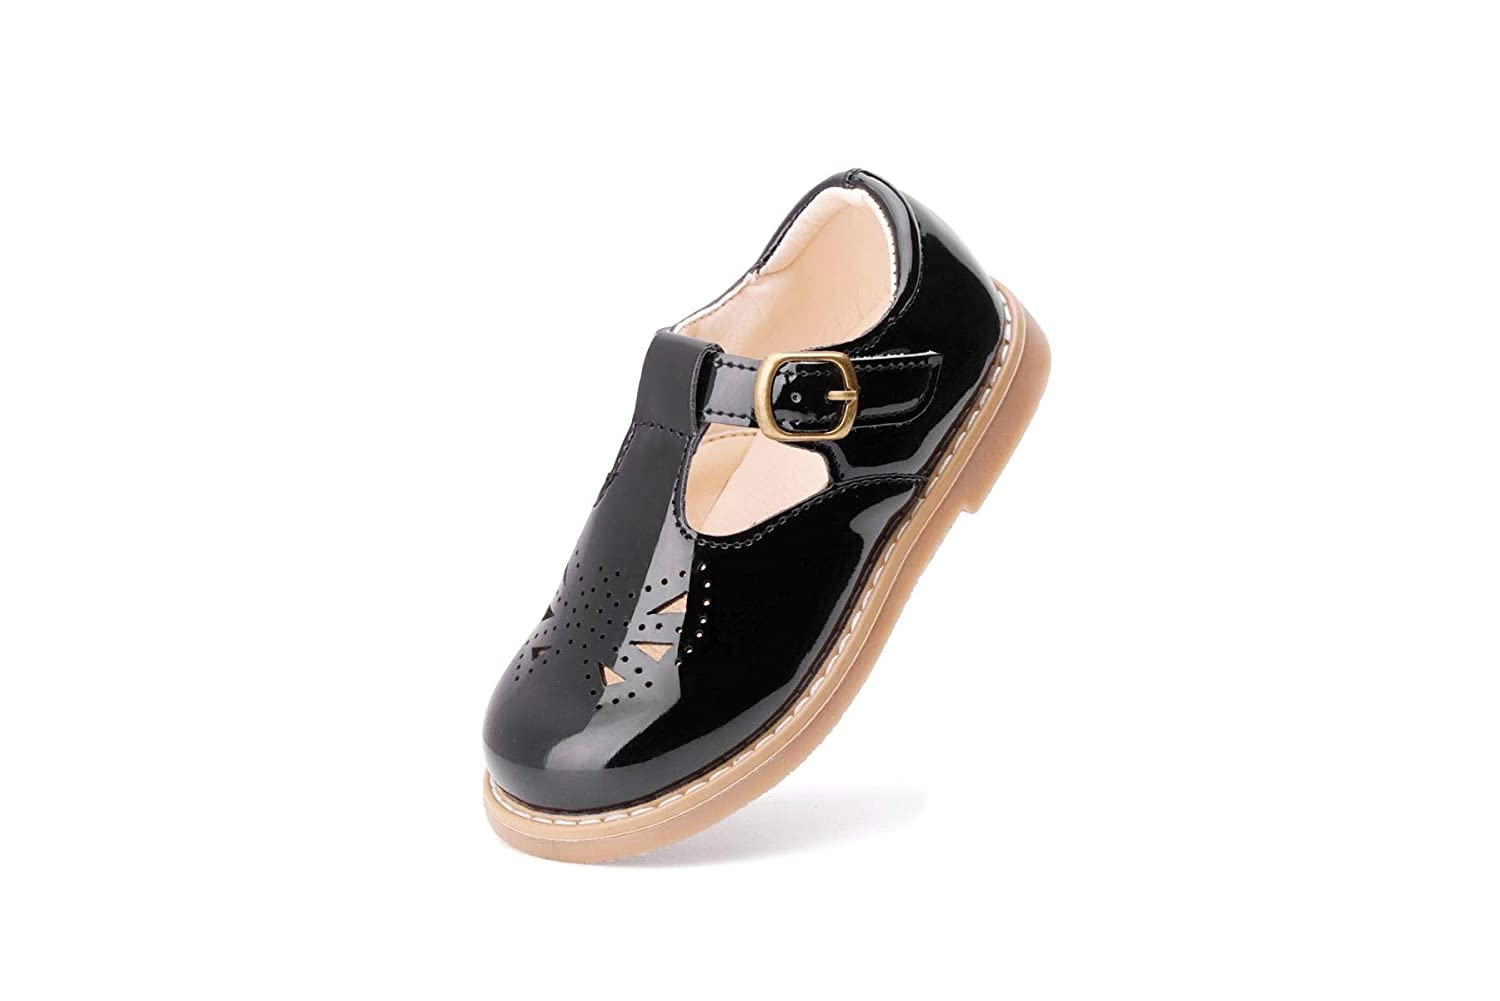 WUIWUIYU Toddlers Little Girls/' Soft Vintage Style T-Strap Oxfords Mary Jane Flats Dress Shoes